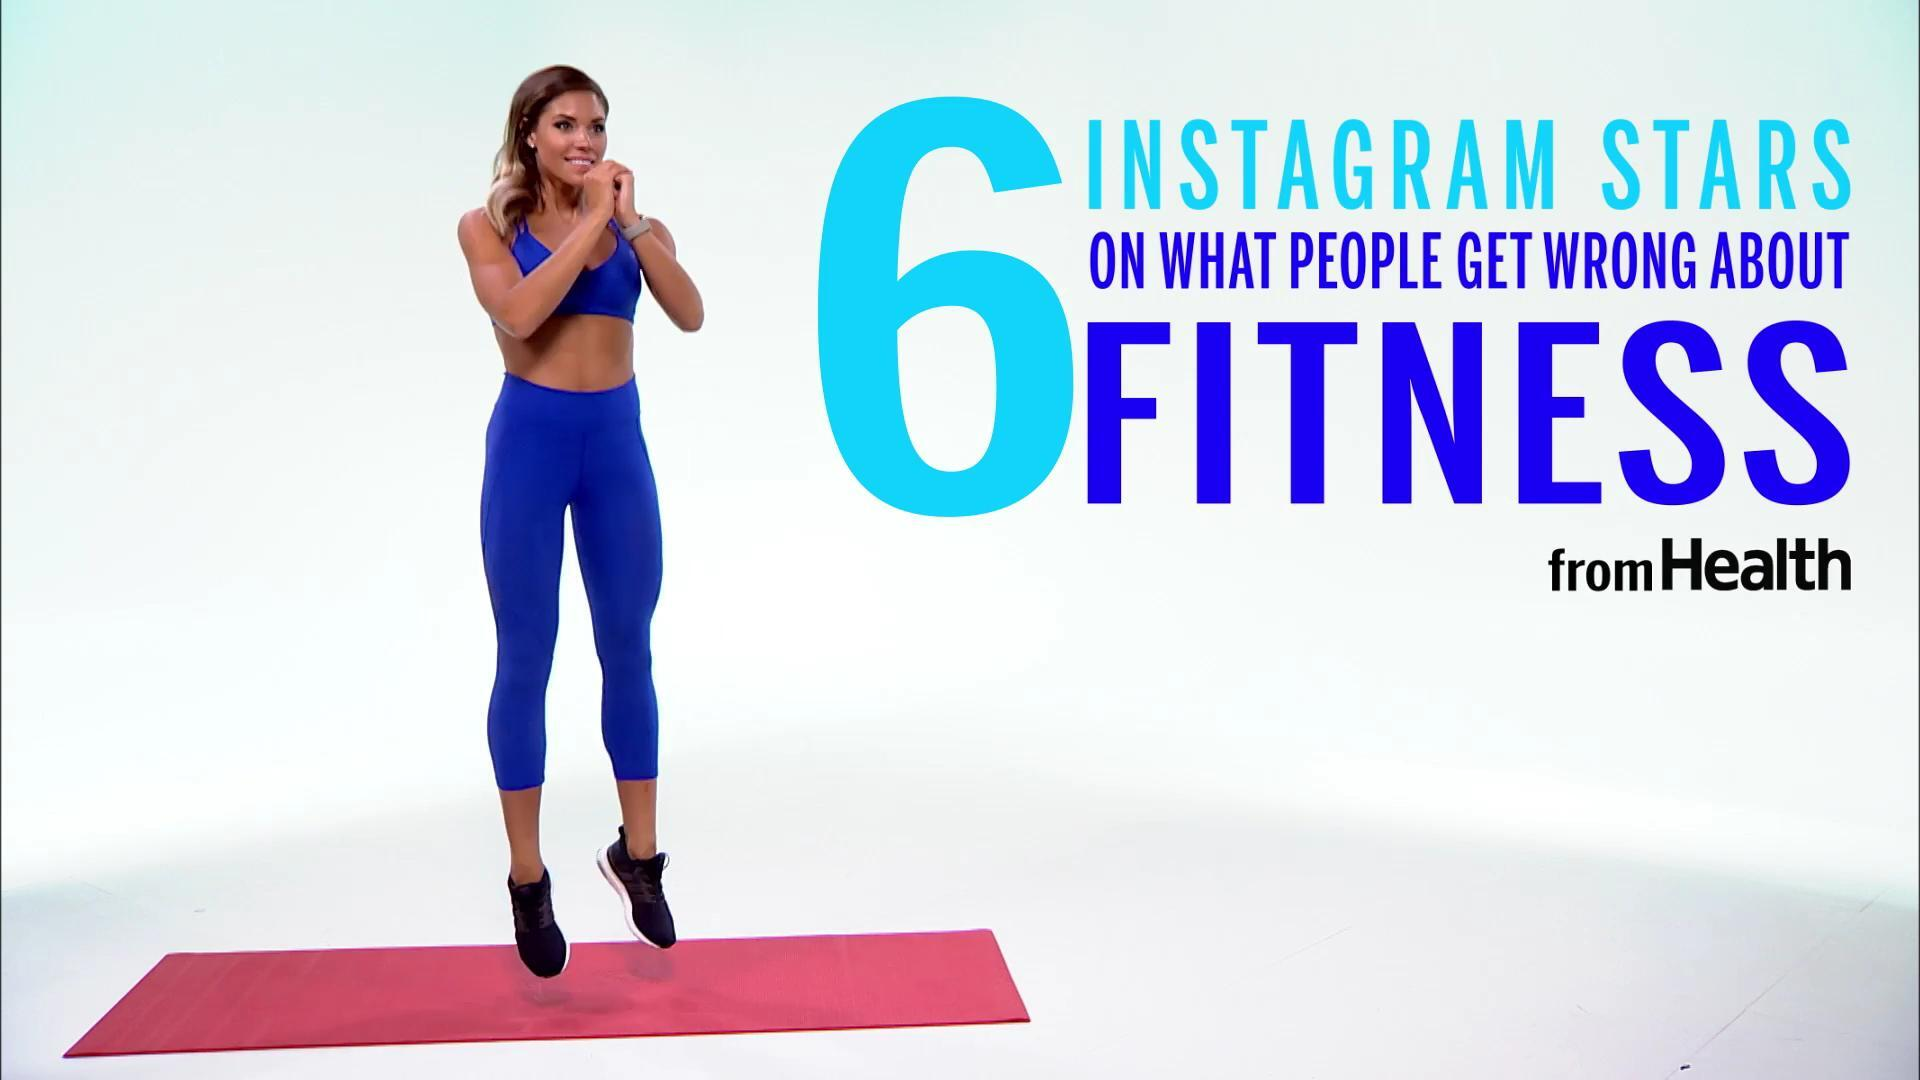 On what people get wrong about fitness...